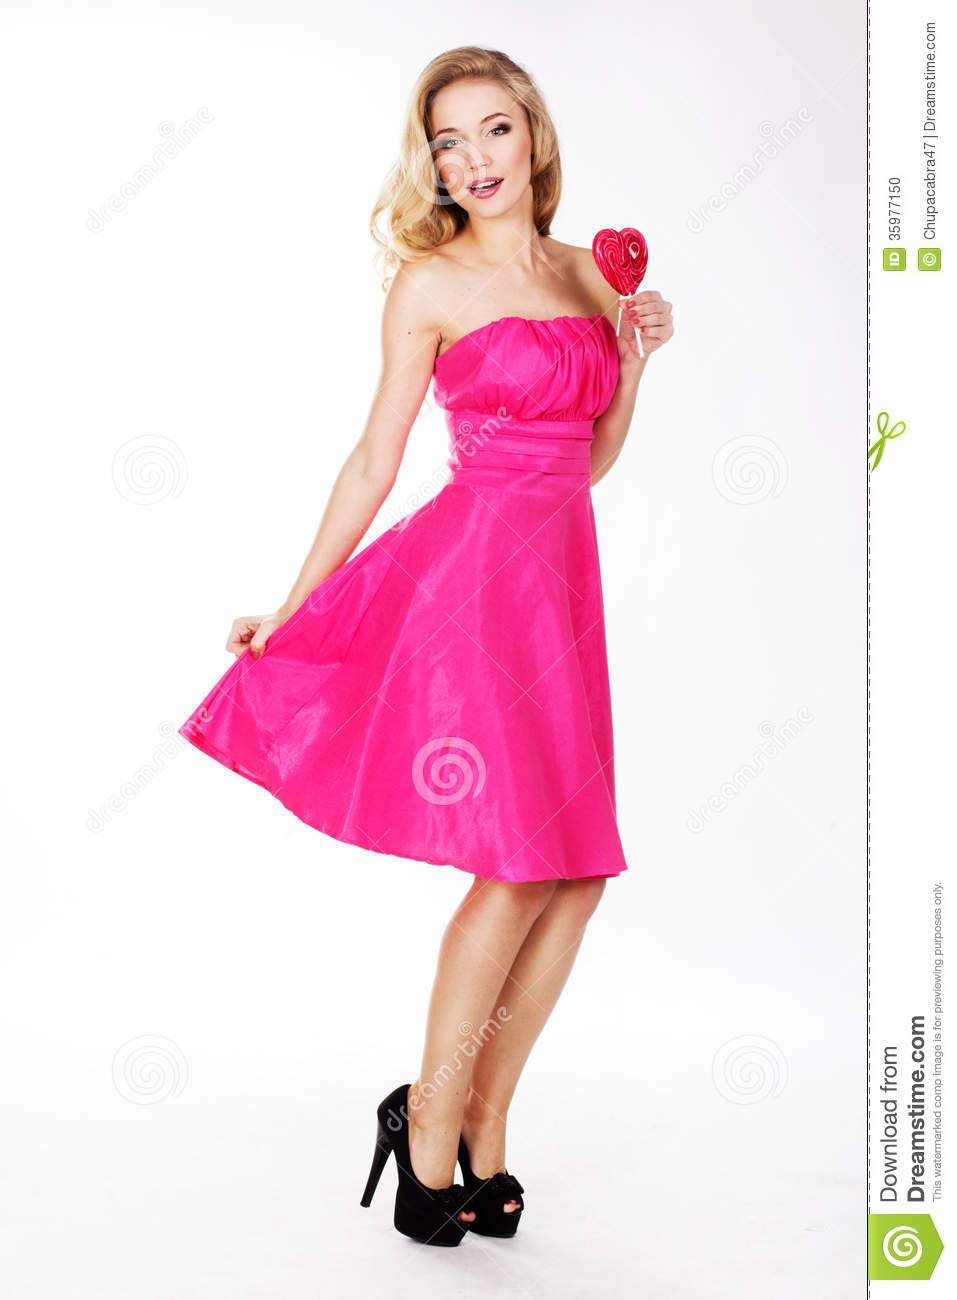 https://thumbs.dreamstime.com/z/sexy-girl-wearing-pink-dress-candy-valentine-s-day-35977150.jpg Hot Pink Dress For Girls